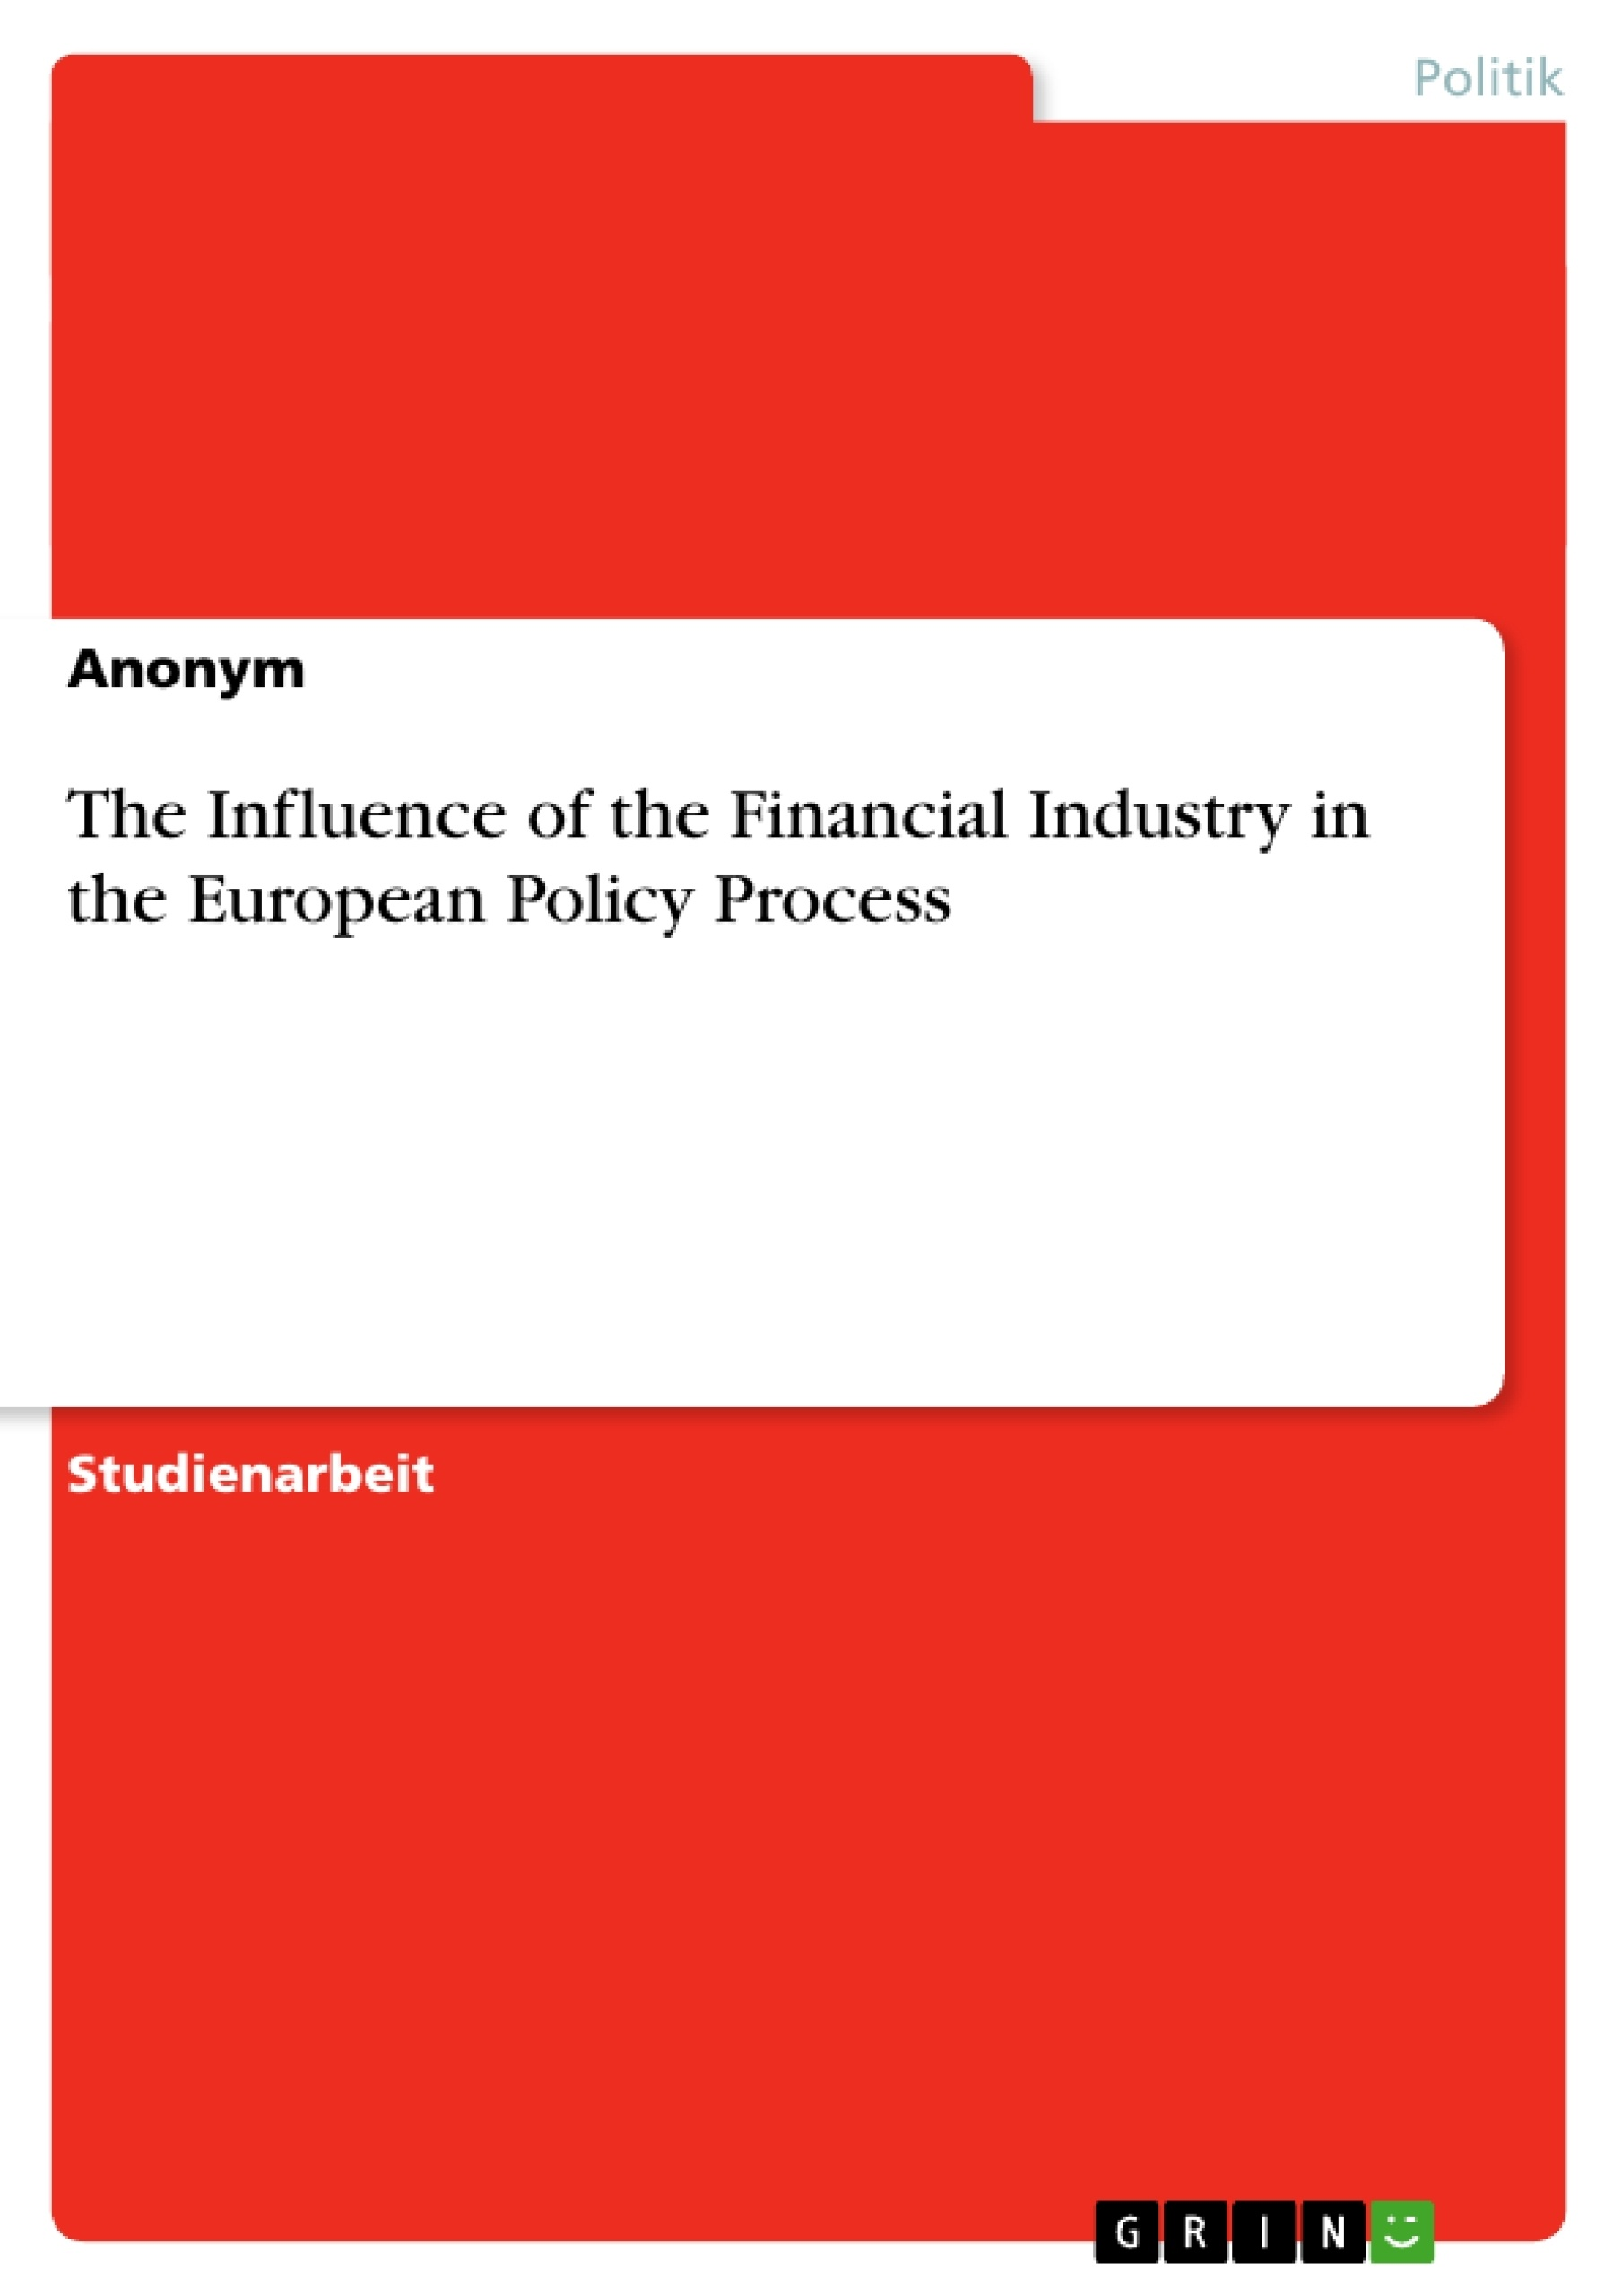 Titel: The Influence of the Financial Industry in the European Policy Process